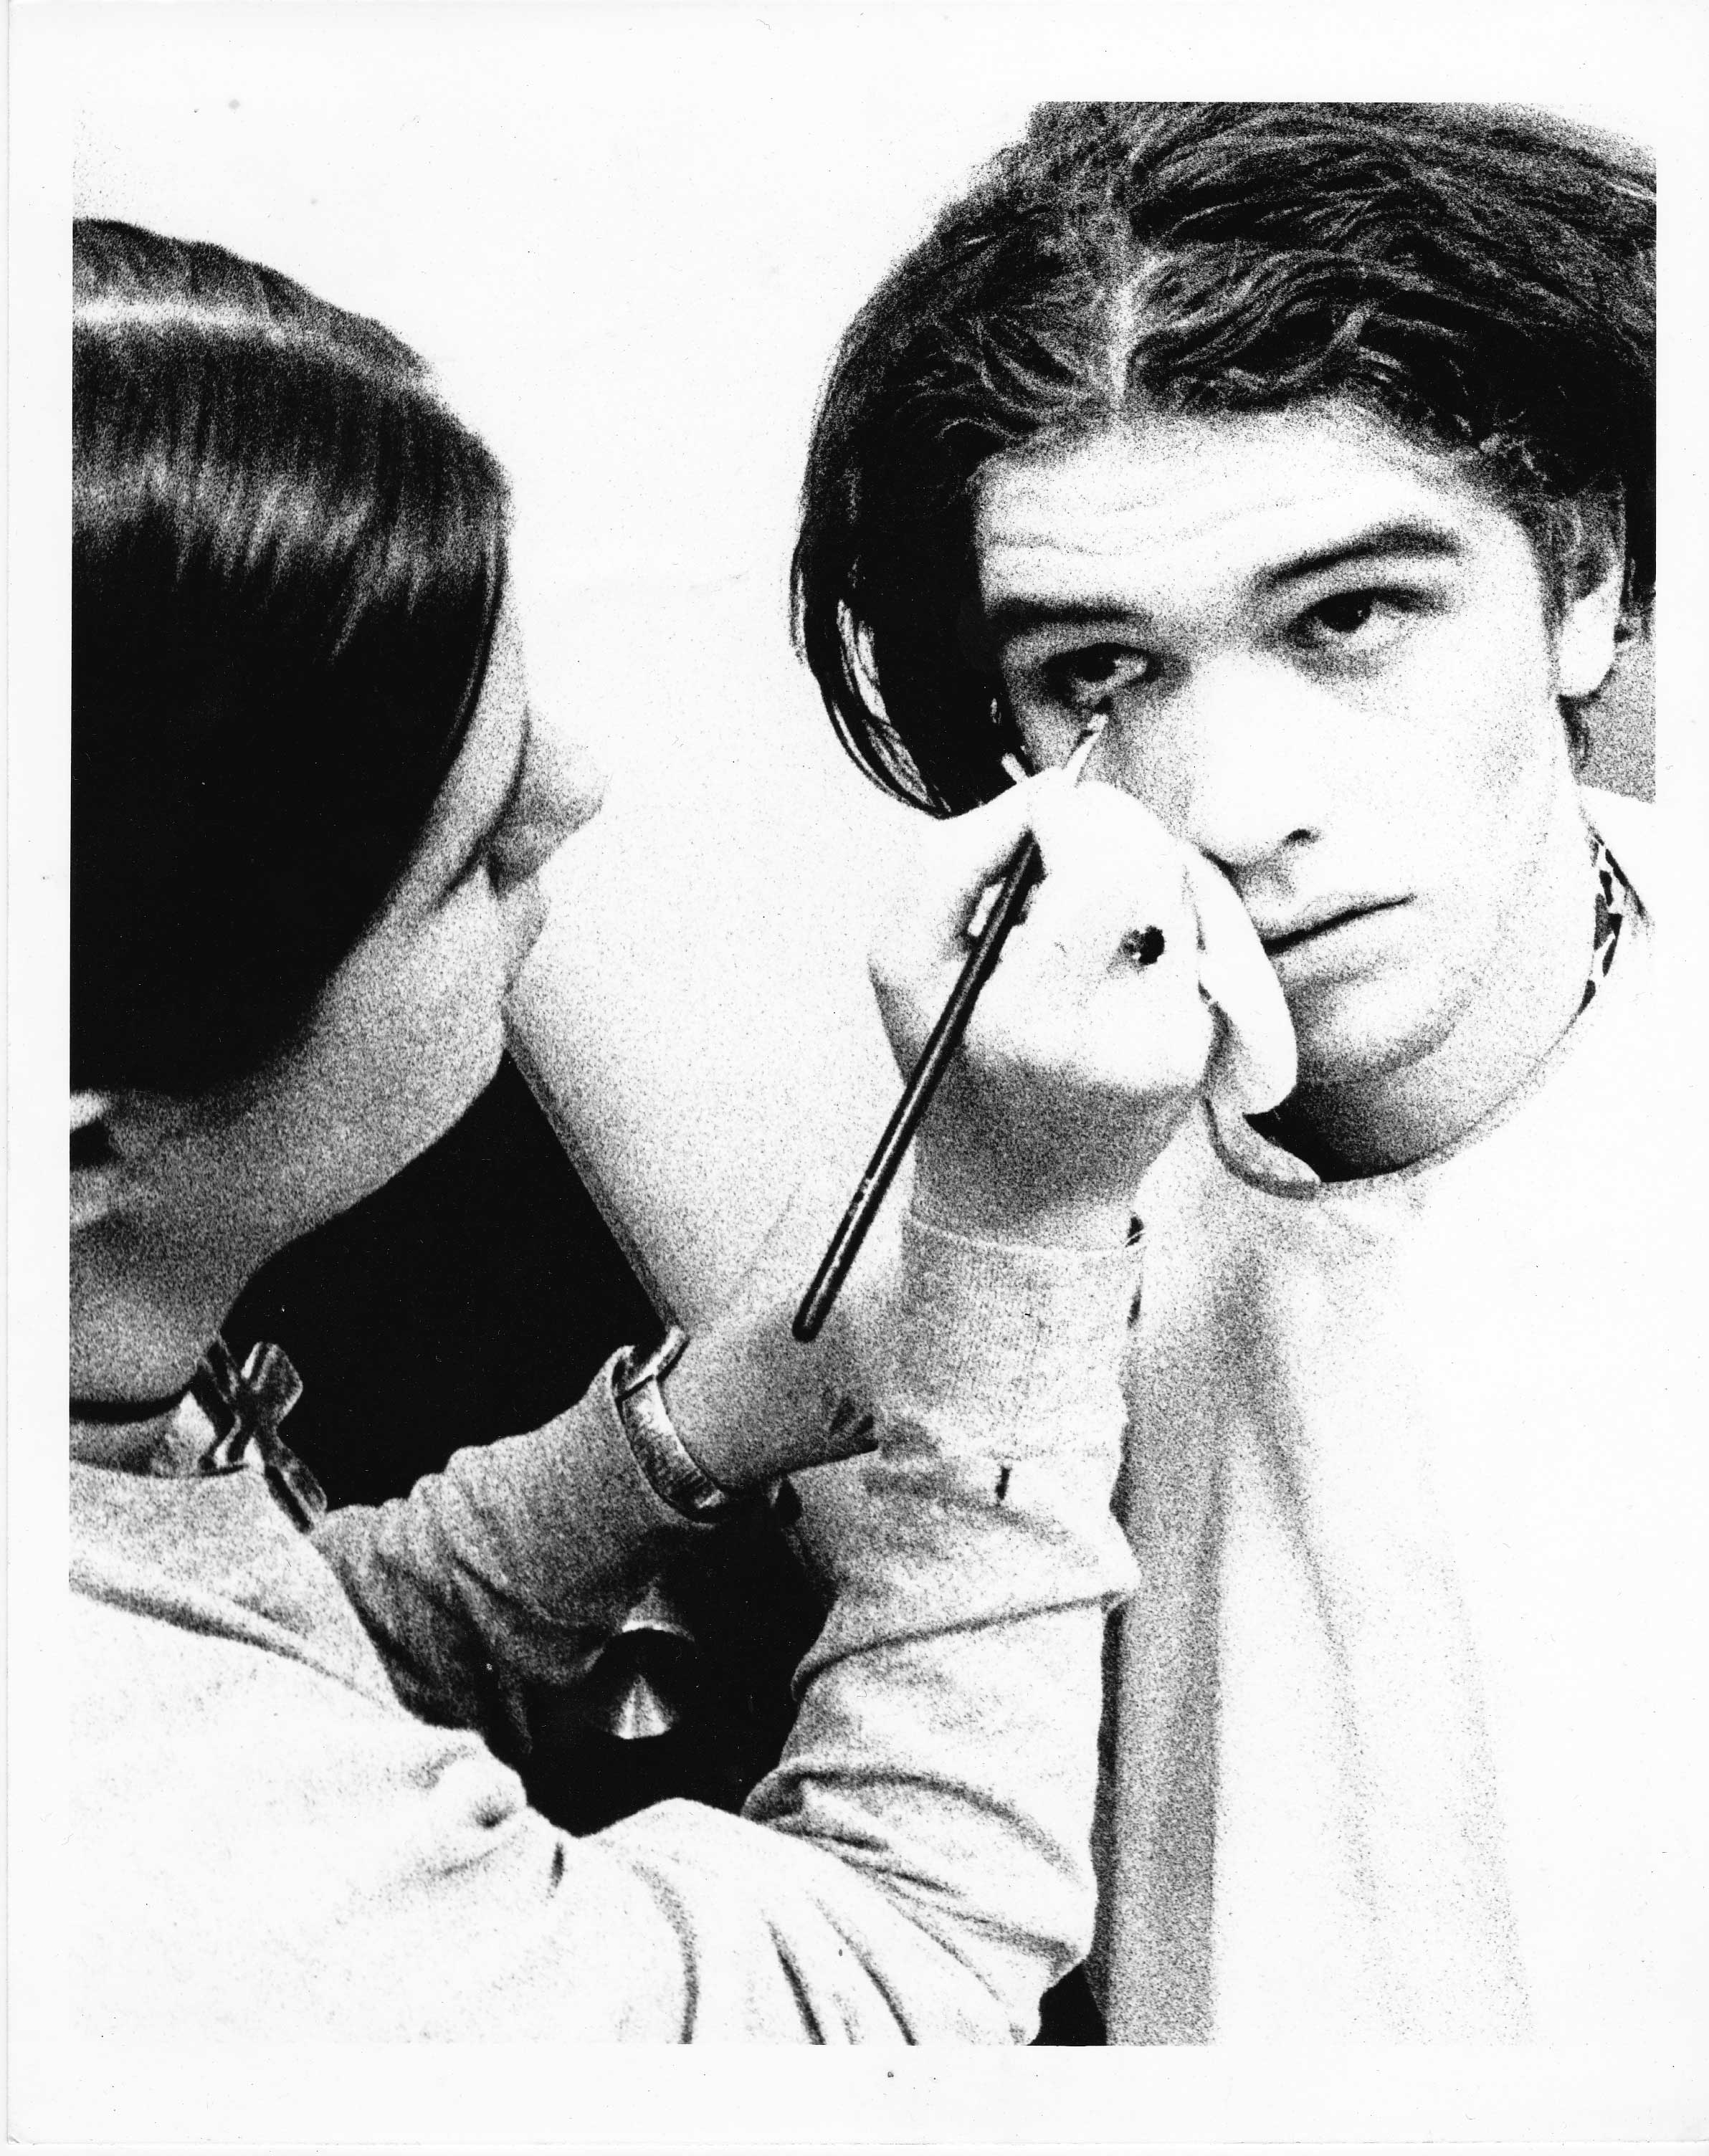 Makeup artist Suzanne Styche applying Torben Tilly.